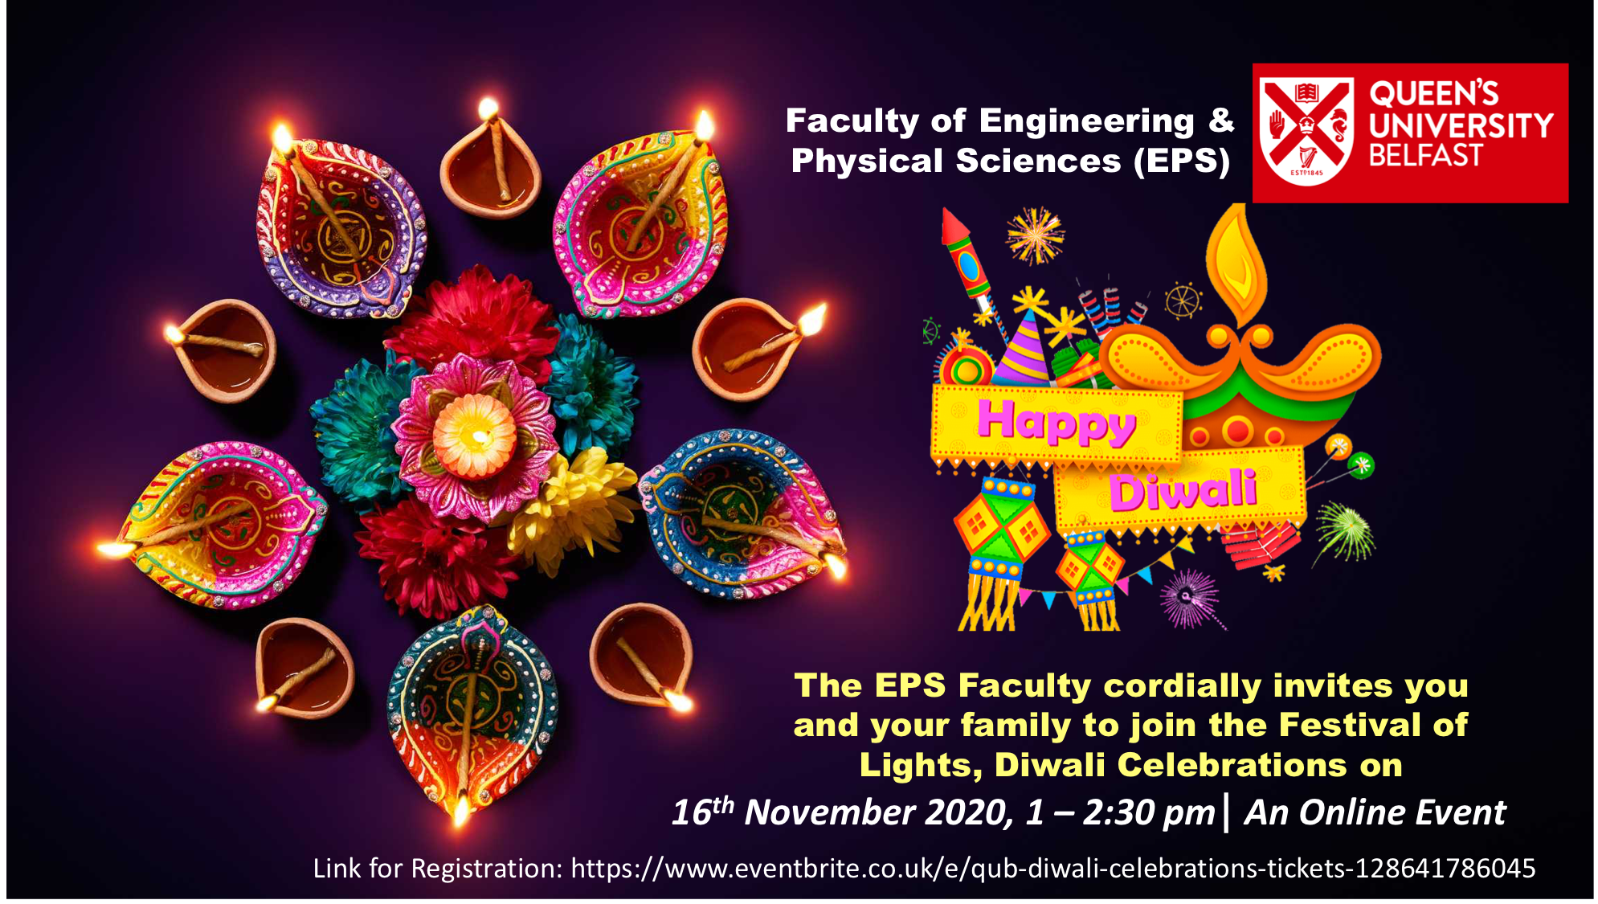 An image which provides information about the EPS Diwali event